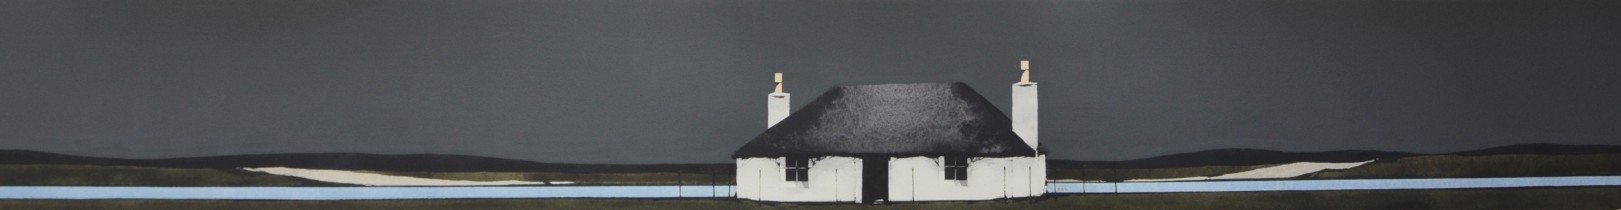 Ron Lawson_EAS233_lochmaddy cottage south uist